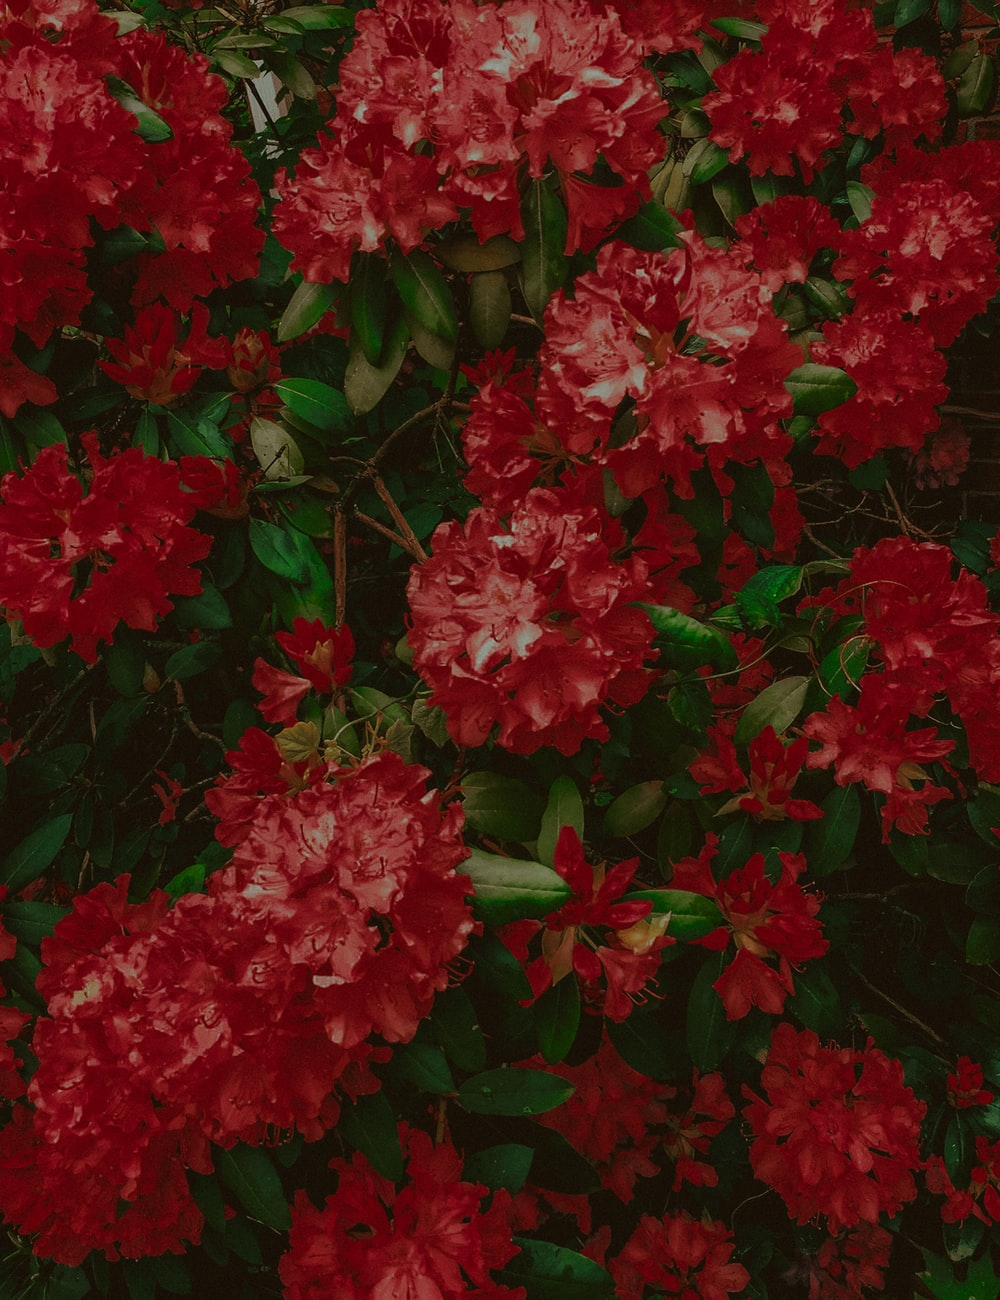 red flowering plant outdoors